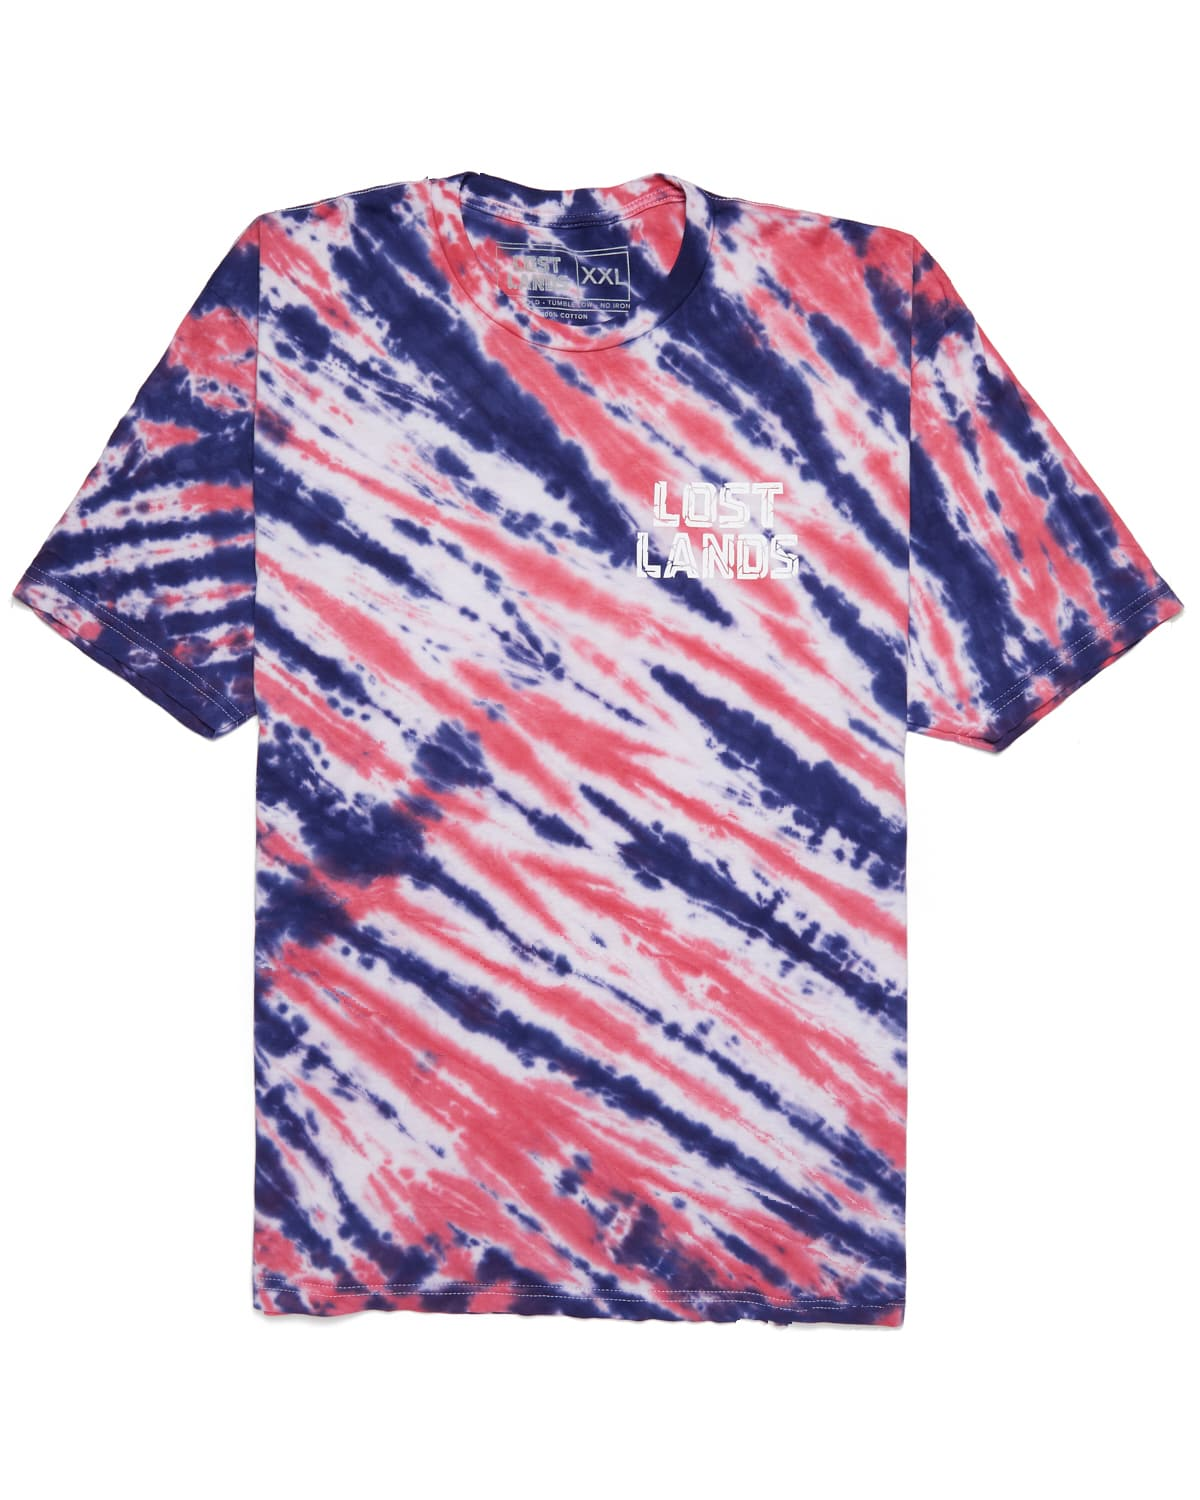 Lost Lands 'Slashed' Tie Dye T-Shirt (Red)